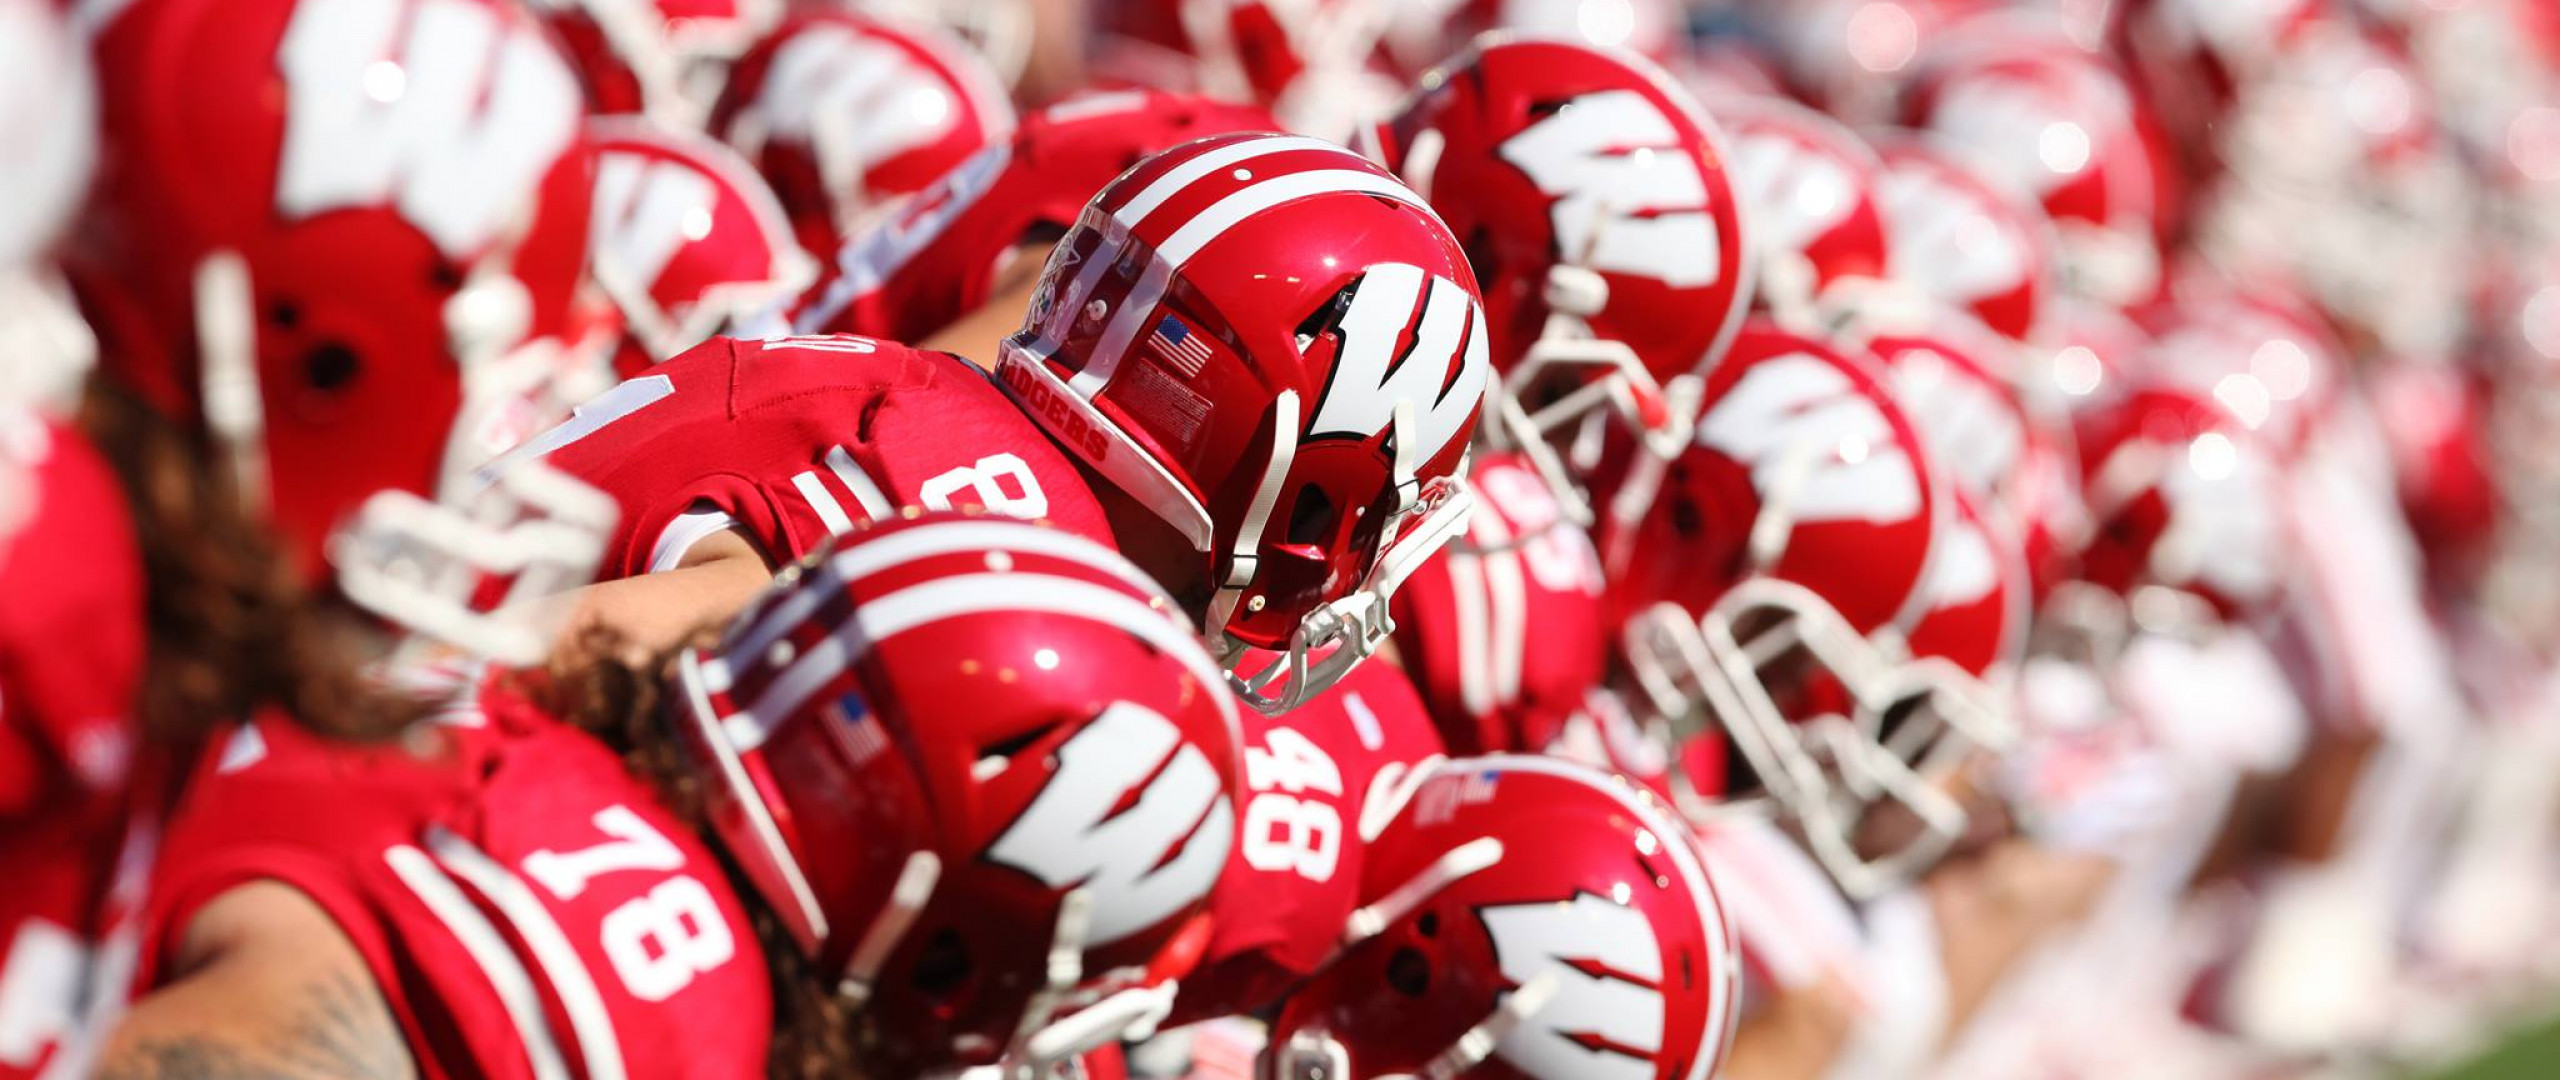 Green Bay Packers Wallpaper Hd Wisconsin Badgers Wallpapers 183 ①